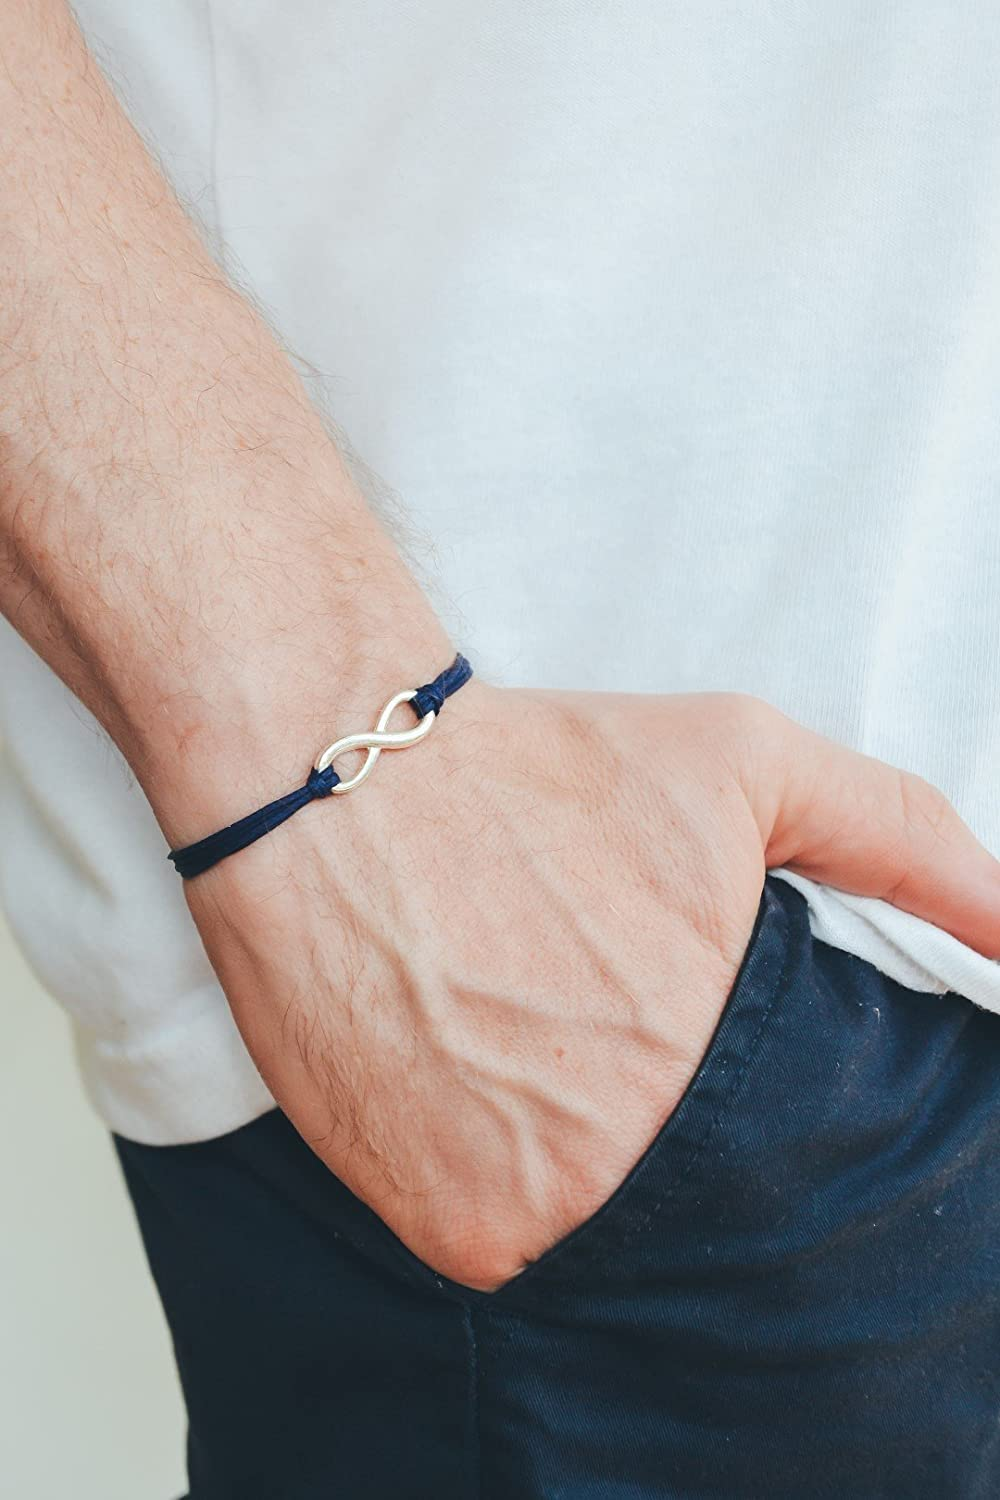 Infinity bracelet for men, blue cord men's bracelet, silver infinity charm, gift for him, endless, friendship, adjustable, yoga bracelet blue cord men' s bracelet